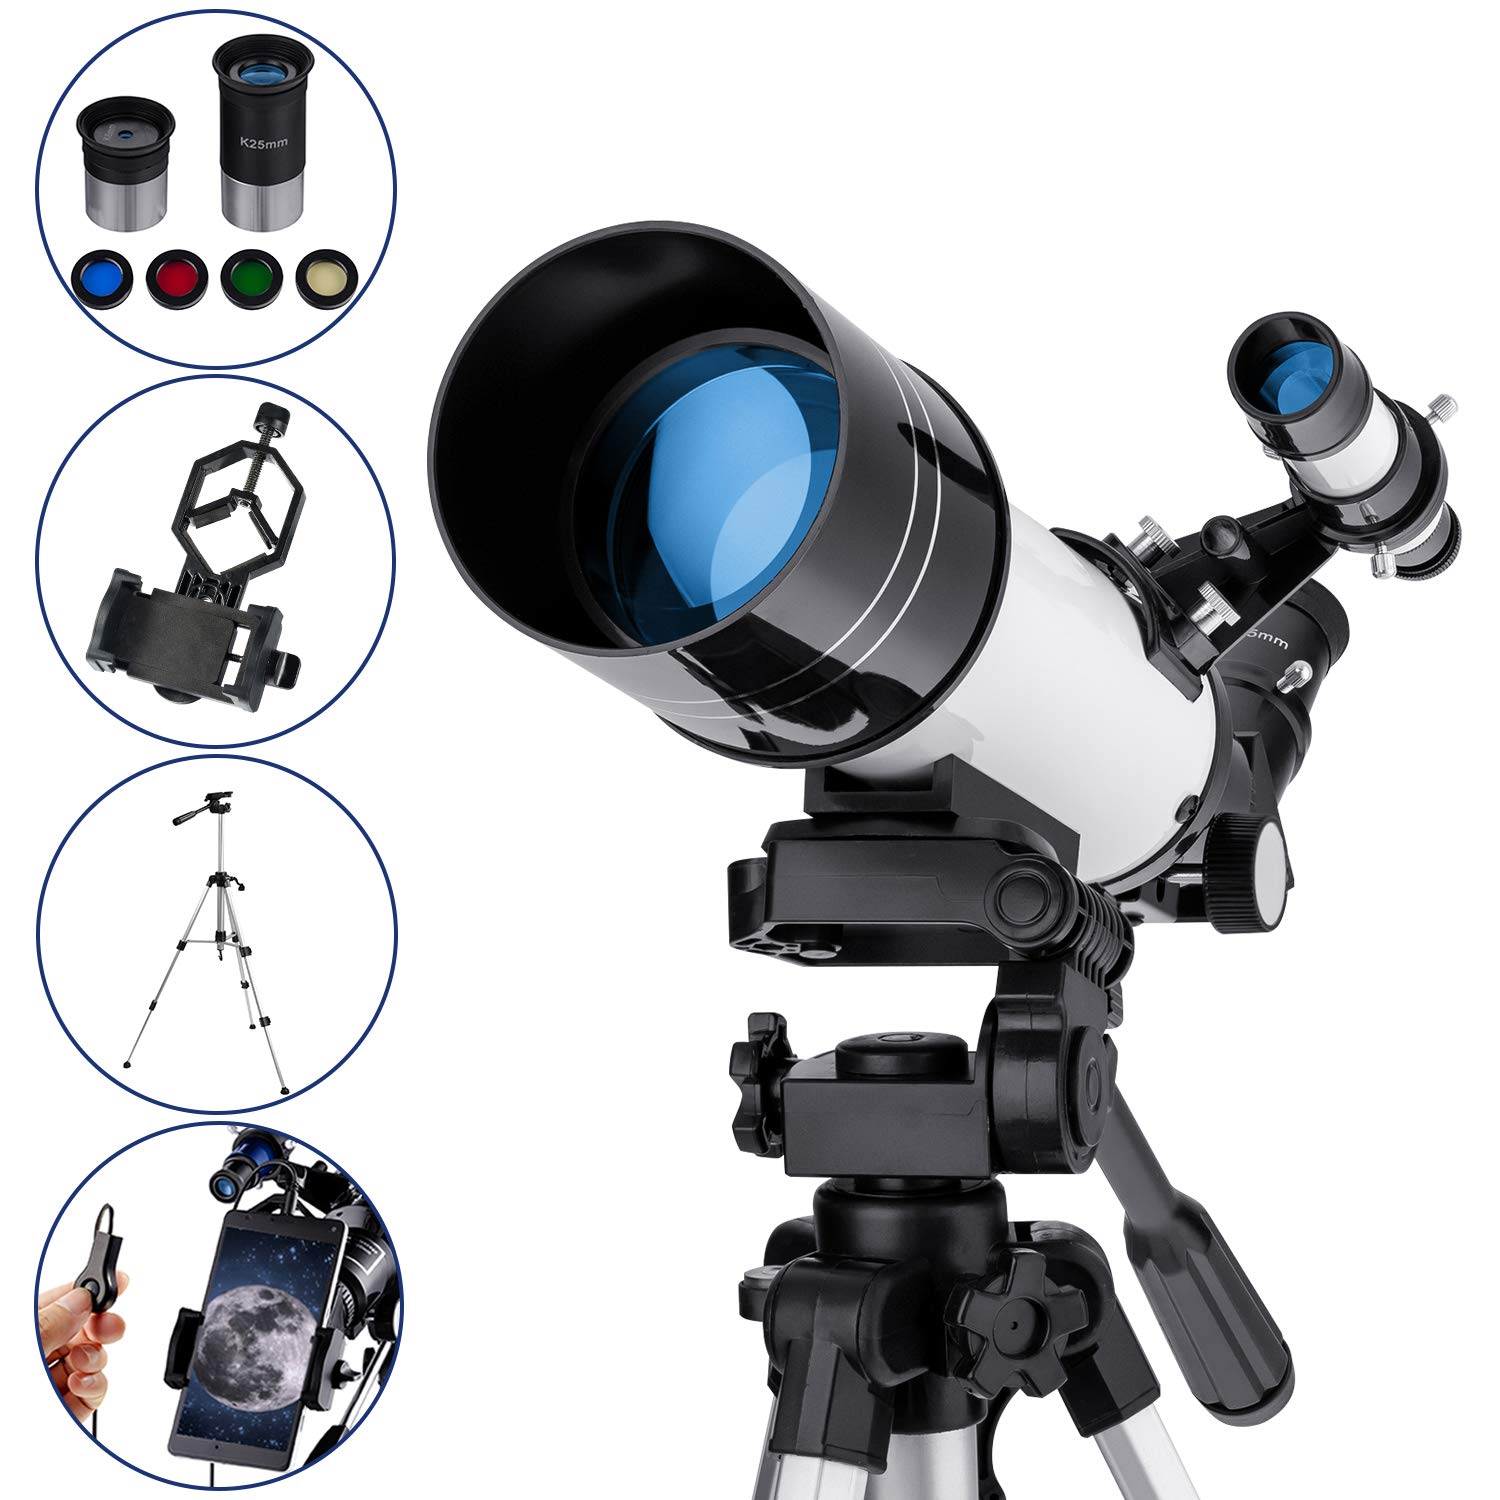 MAXLAPTER Refractive Astronomy Telescope, HD High Magnification, Dual-Use, Suitable for Adults or Children Beginners, Portable, Equipped with Tripod, Smartphone Adapter by MAXLAPTER